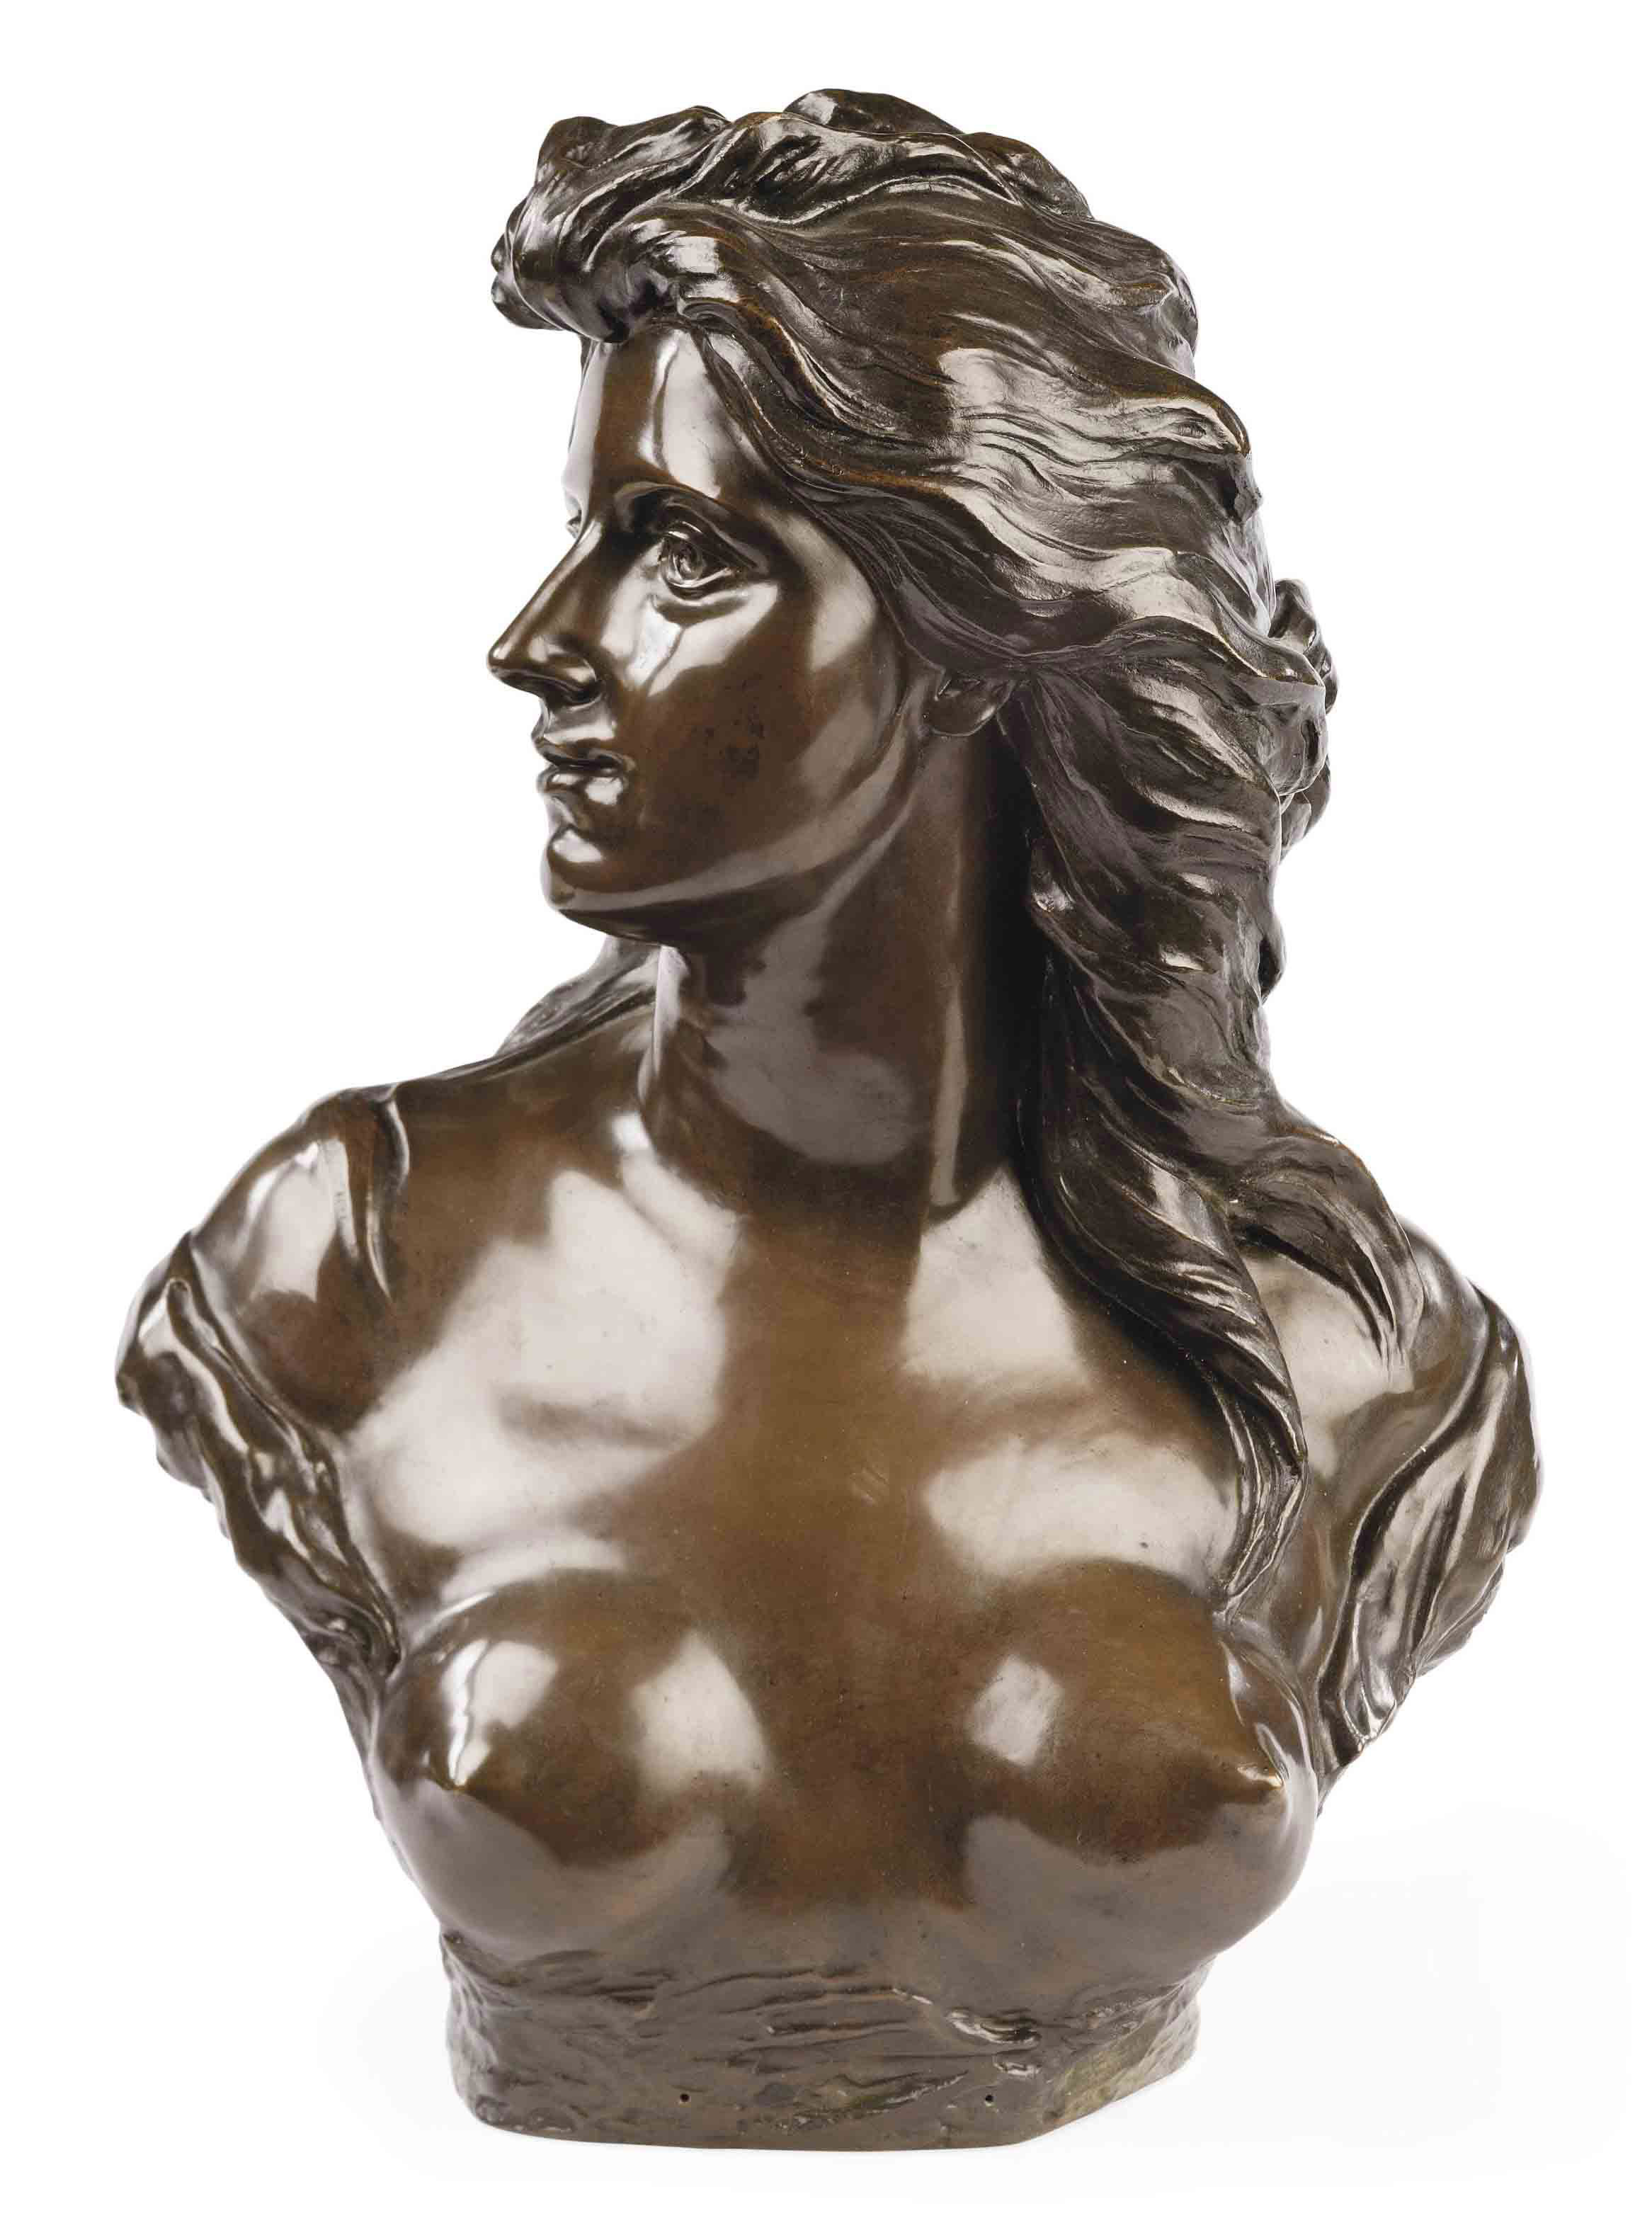 A BELGIAN BRONZE BUST OF A YOUNG WOMAN